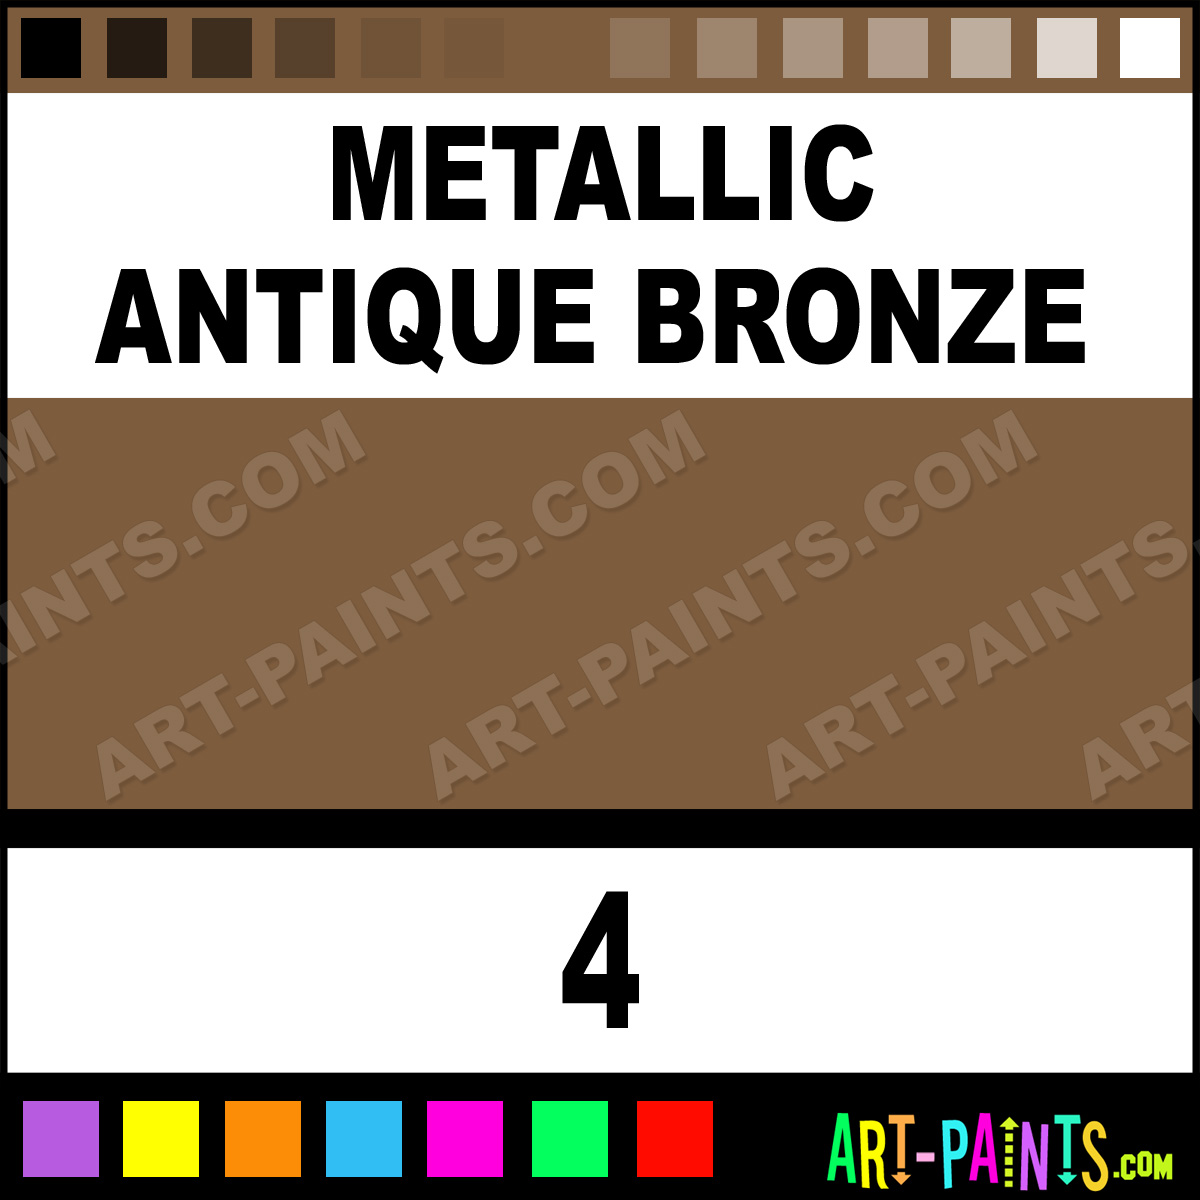 Metallic Antique Bronze Acrylic Enamel Paints 4 Metallic Antique Bronze P